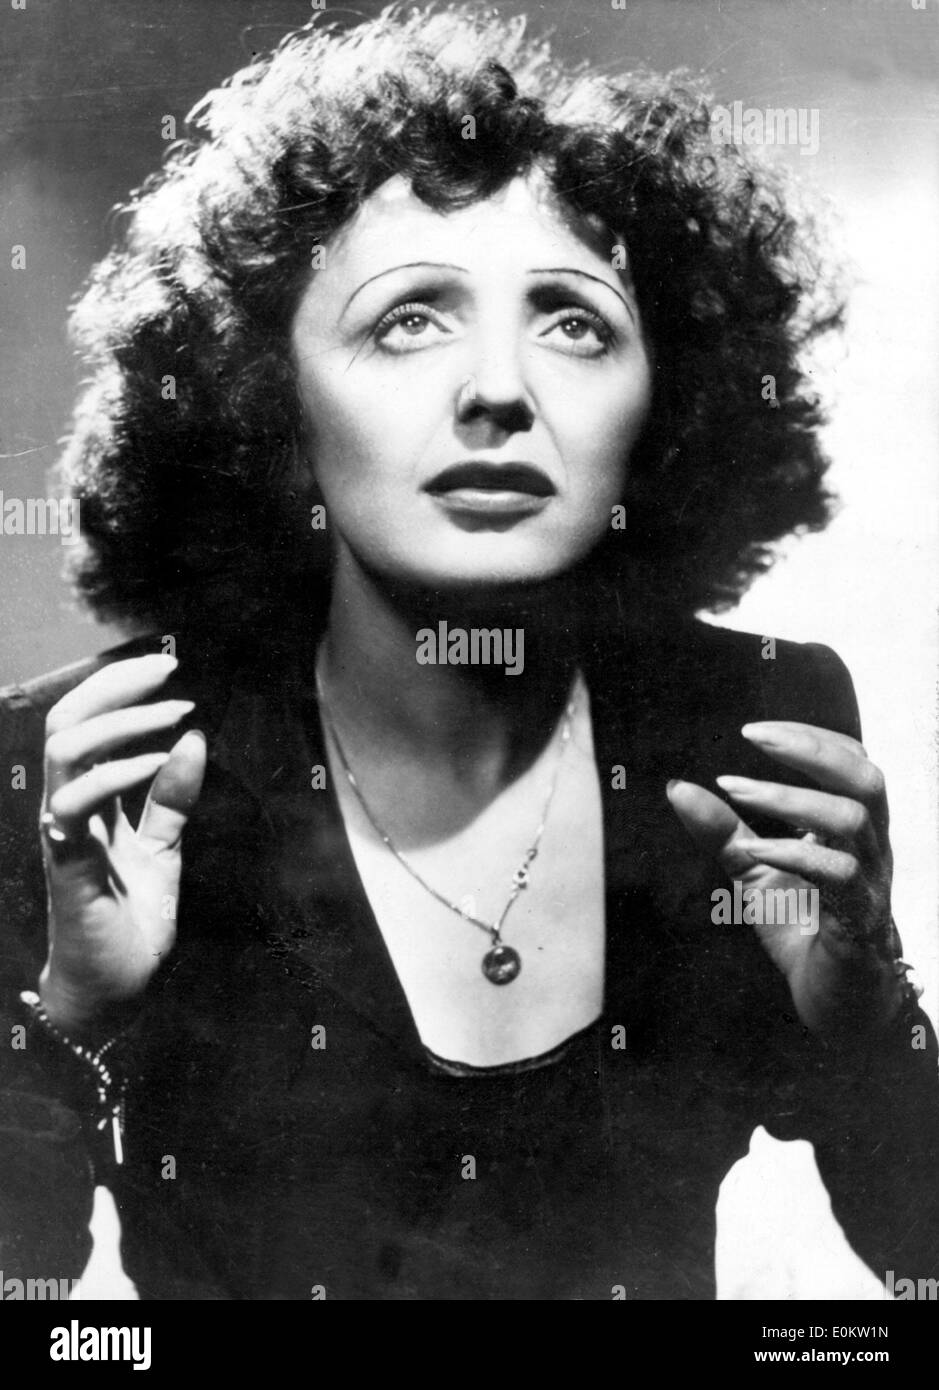 Portrait of singer and cultural icon Edith Piaf - Stock Image